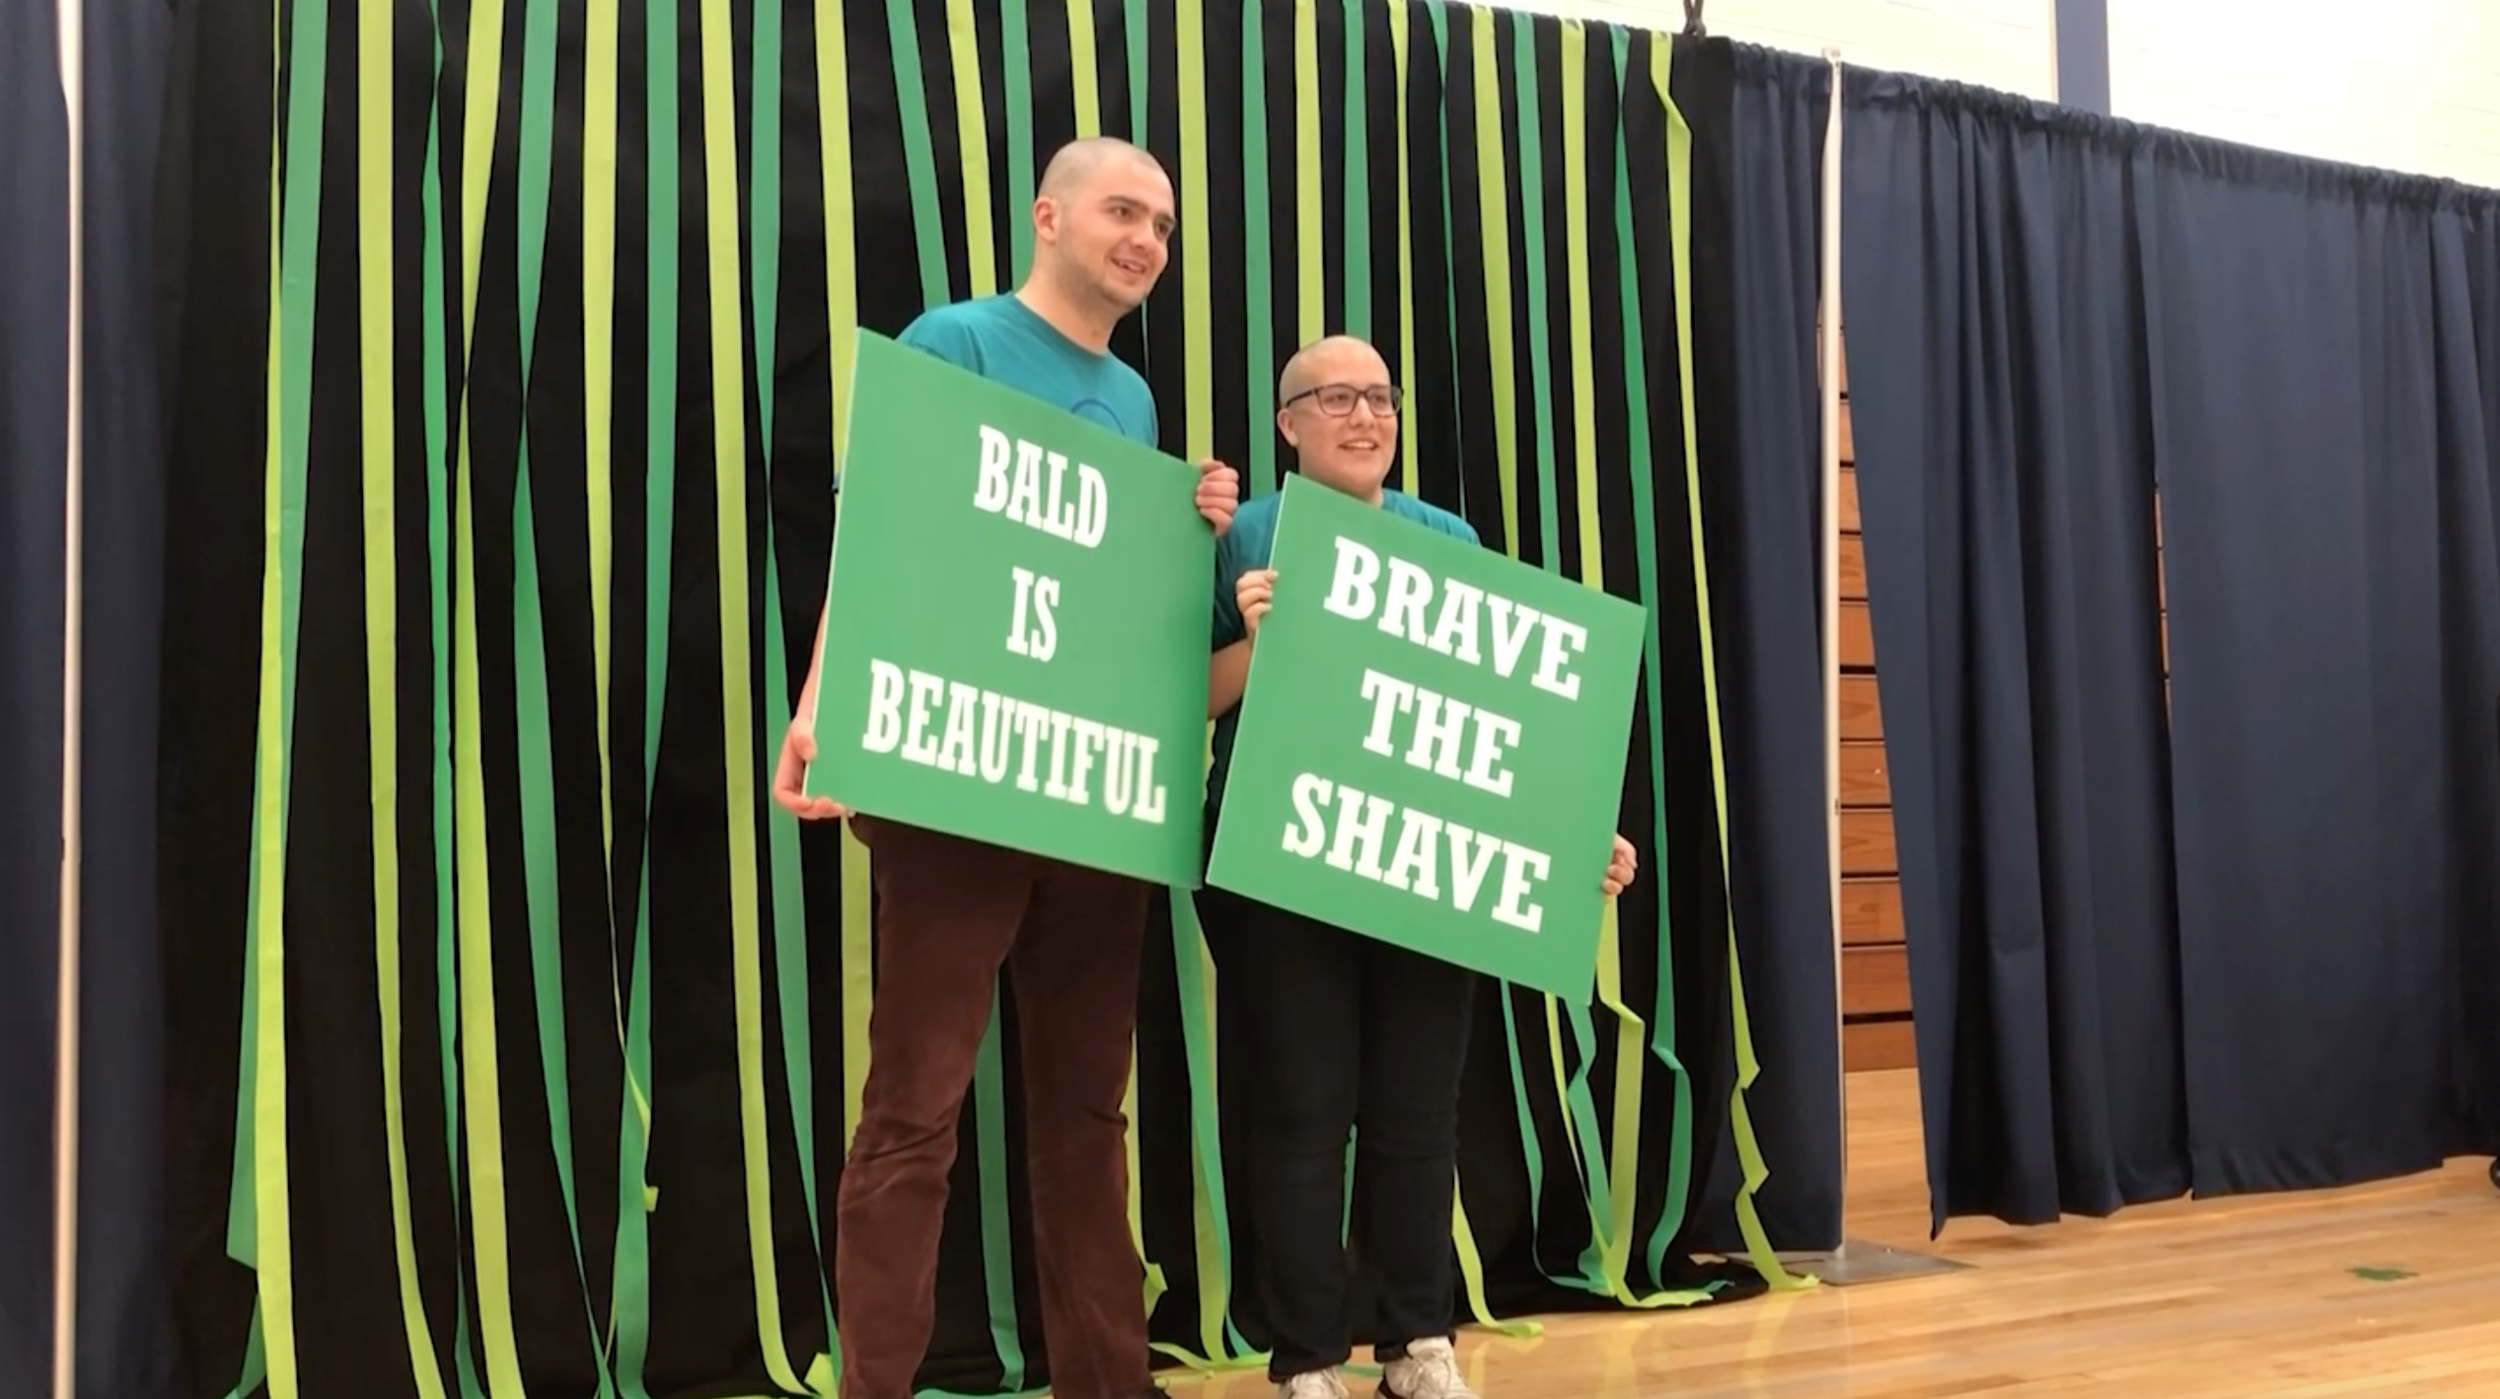 "Event coordinators, Luke Ahearn and Emma Shipton, ""braved the shave"" on Monday night."